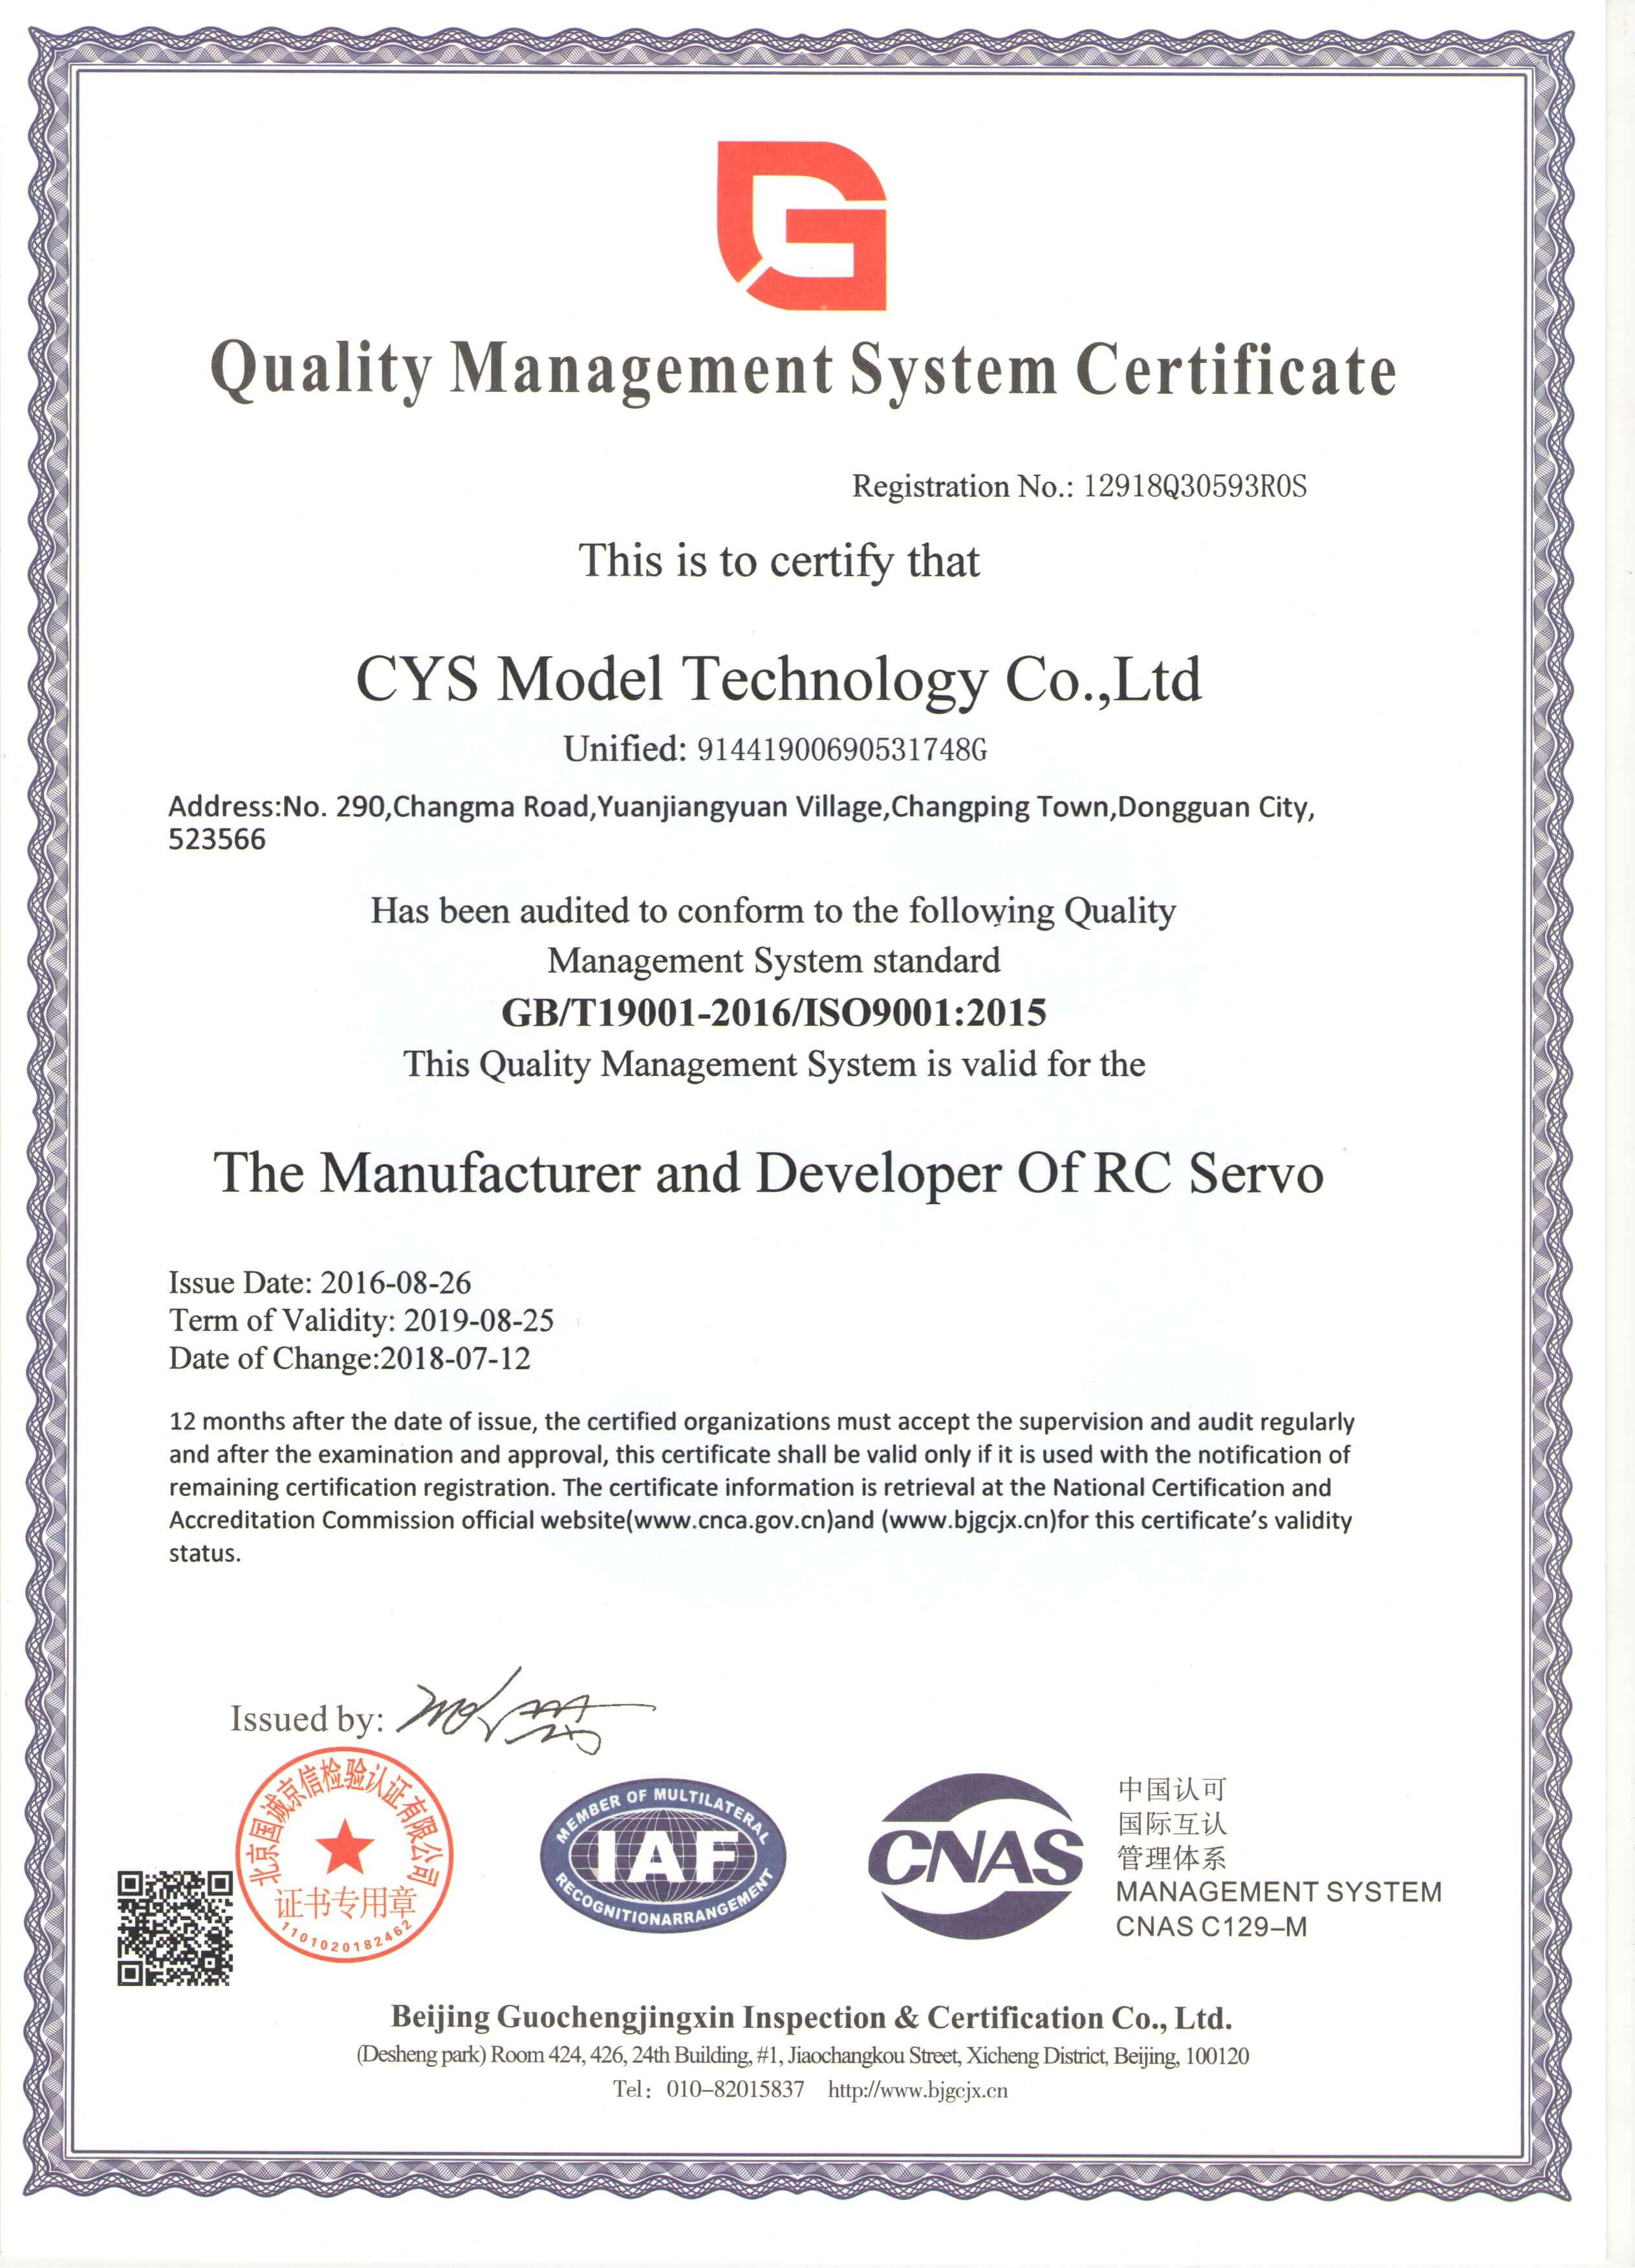 Quality Management System Certificate ISO 9001 :2015